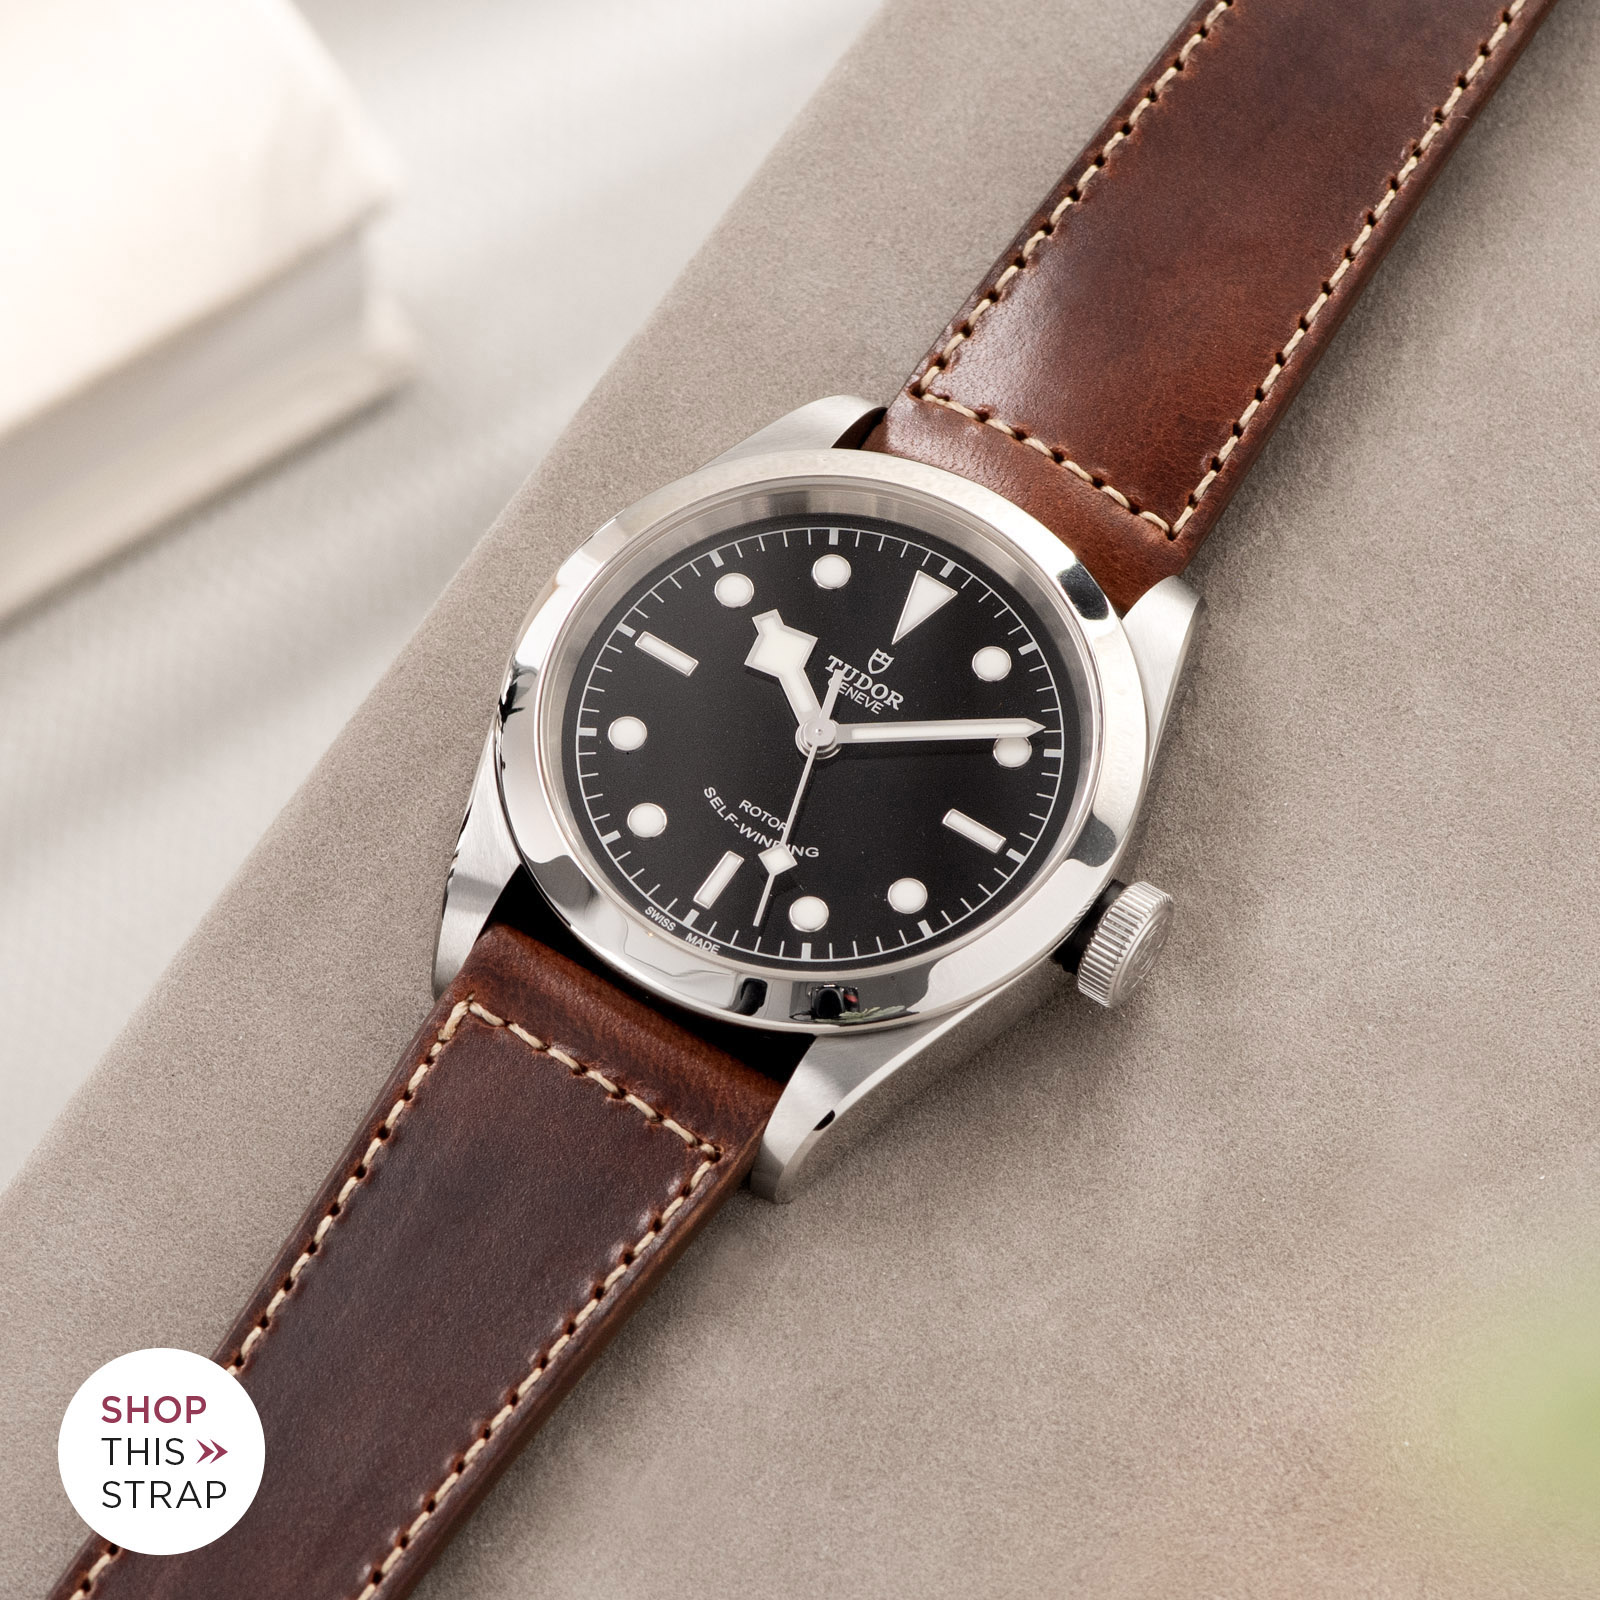 Bulang and Sons_Strap Guide_Tudor Heritage BlackBay 411_Siena Brown Boxed Stitch Leather Watch Strap